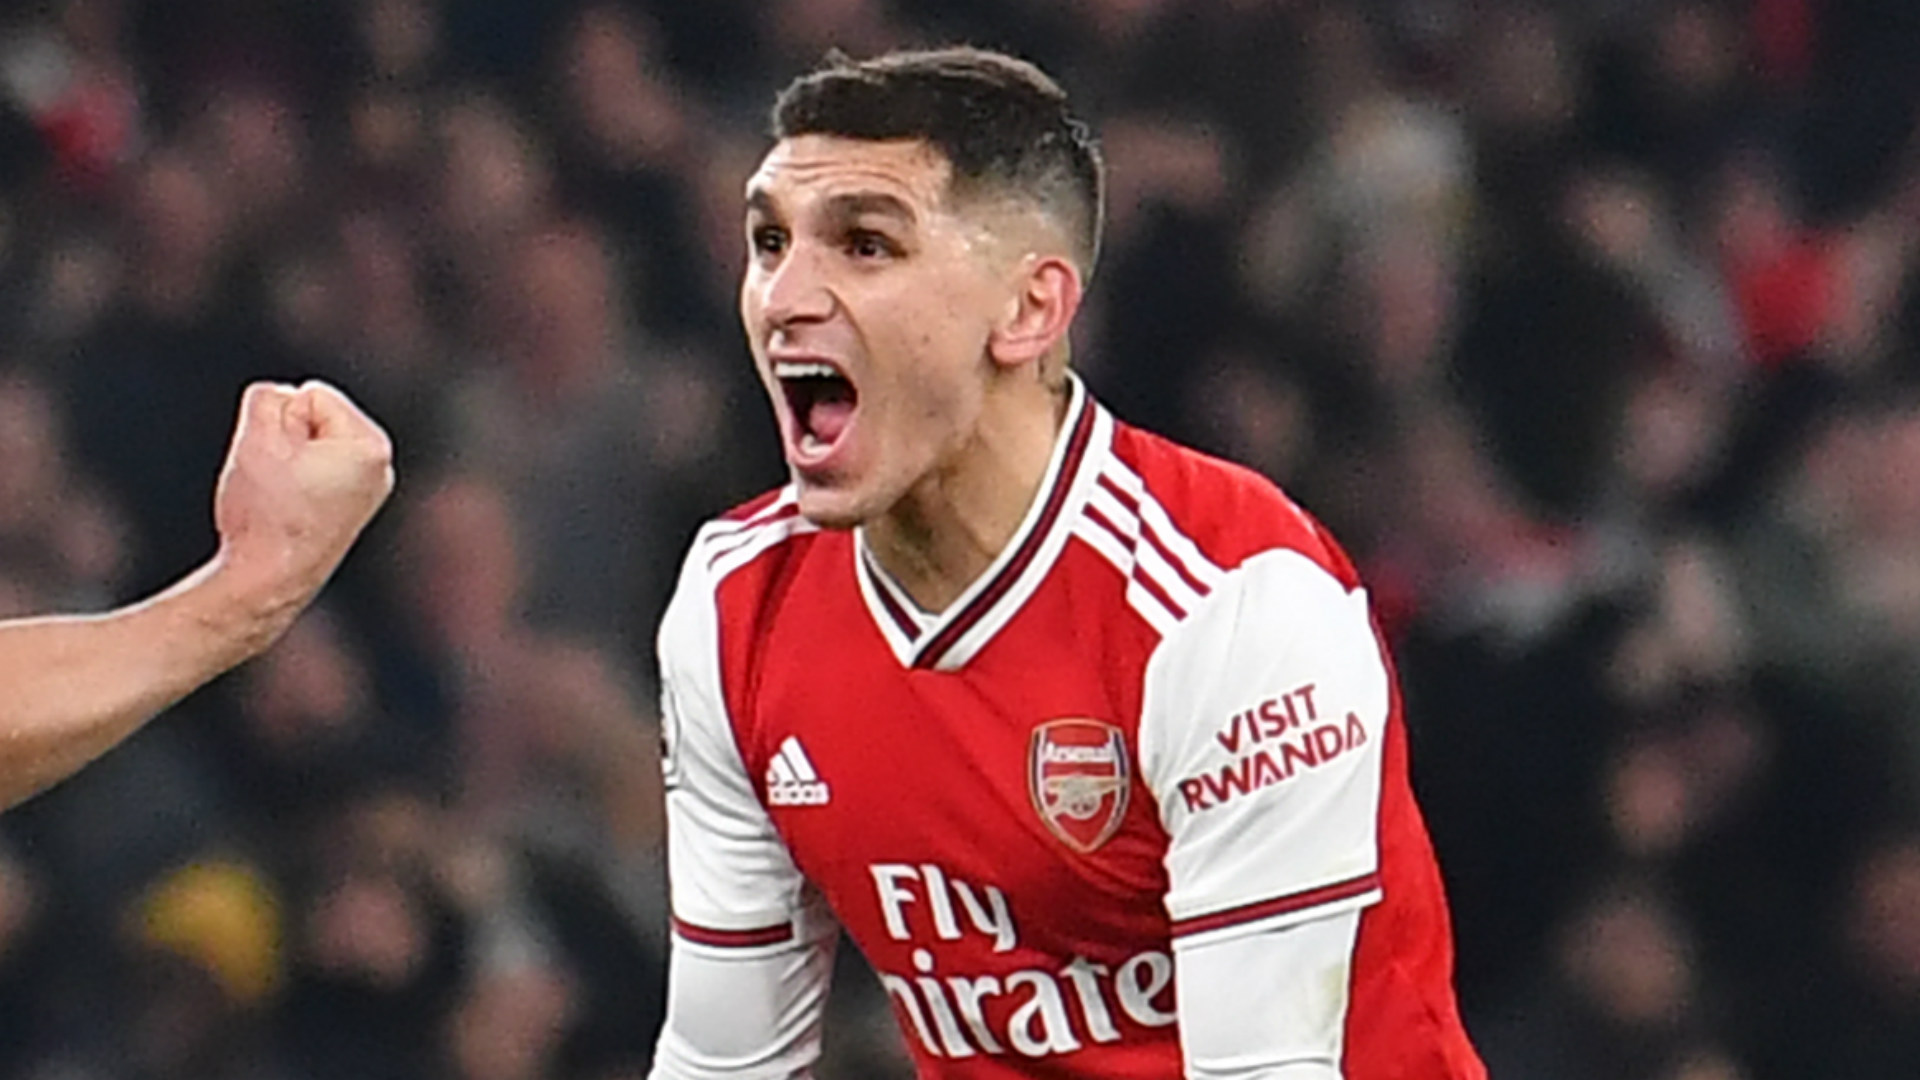 'At this age I need to play' - Arsenal midfielder Torreira admits he may have to leave Gunners